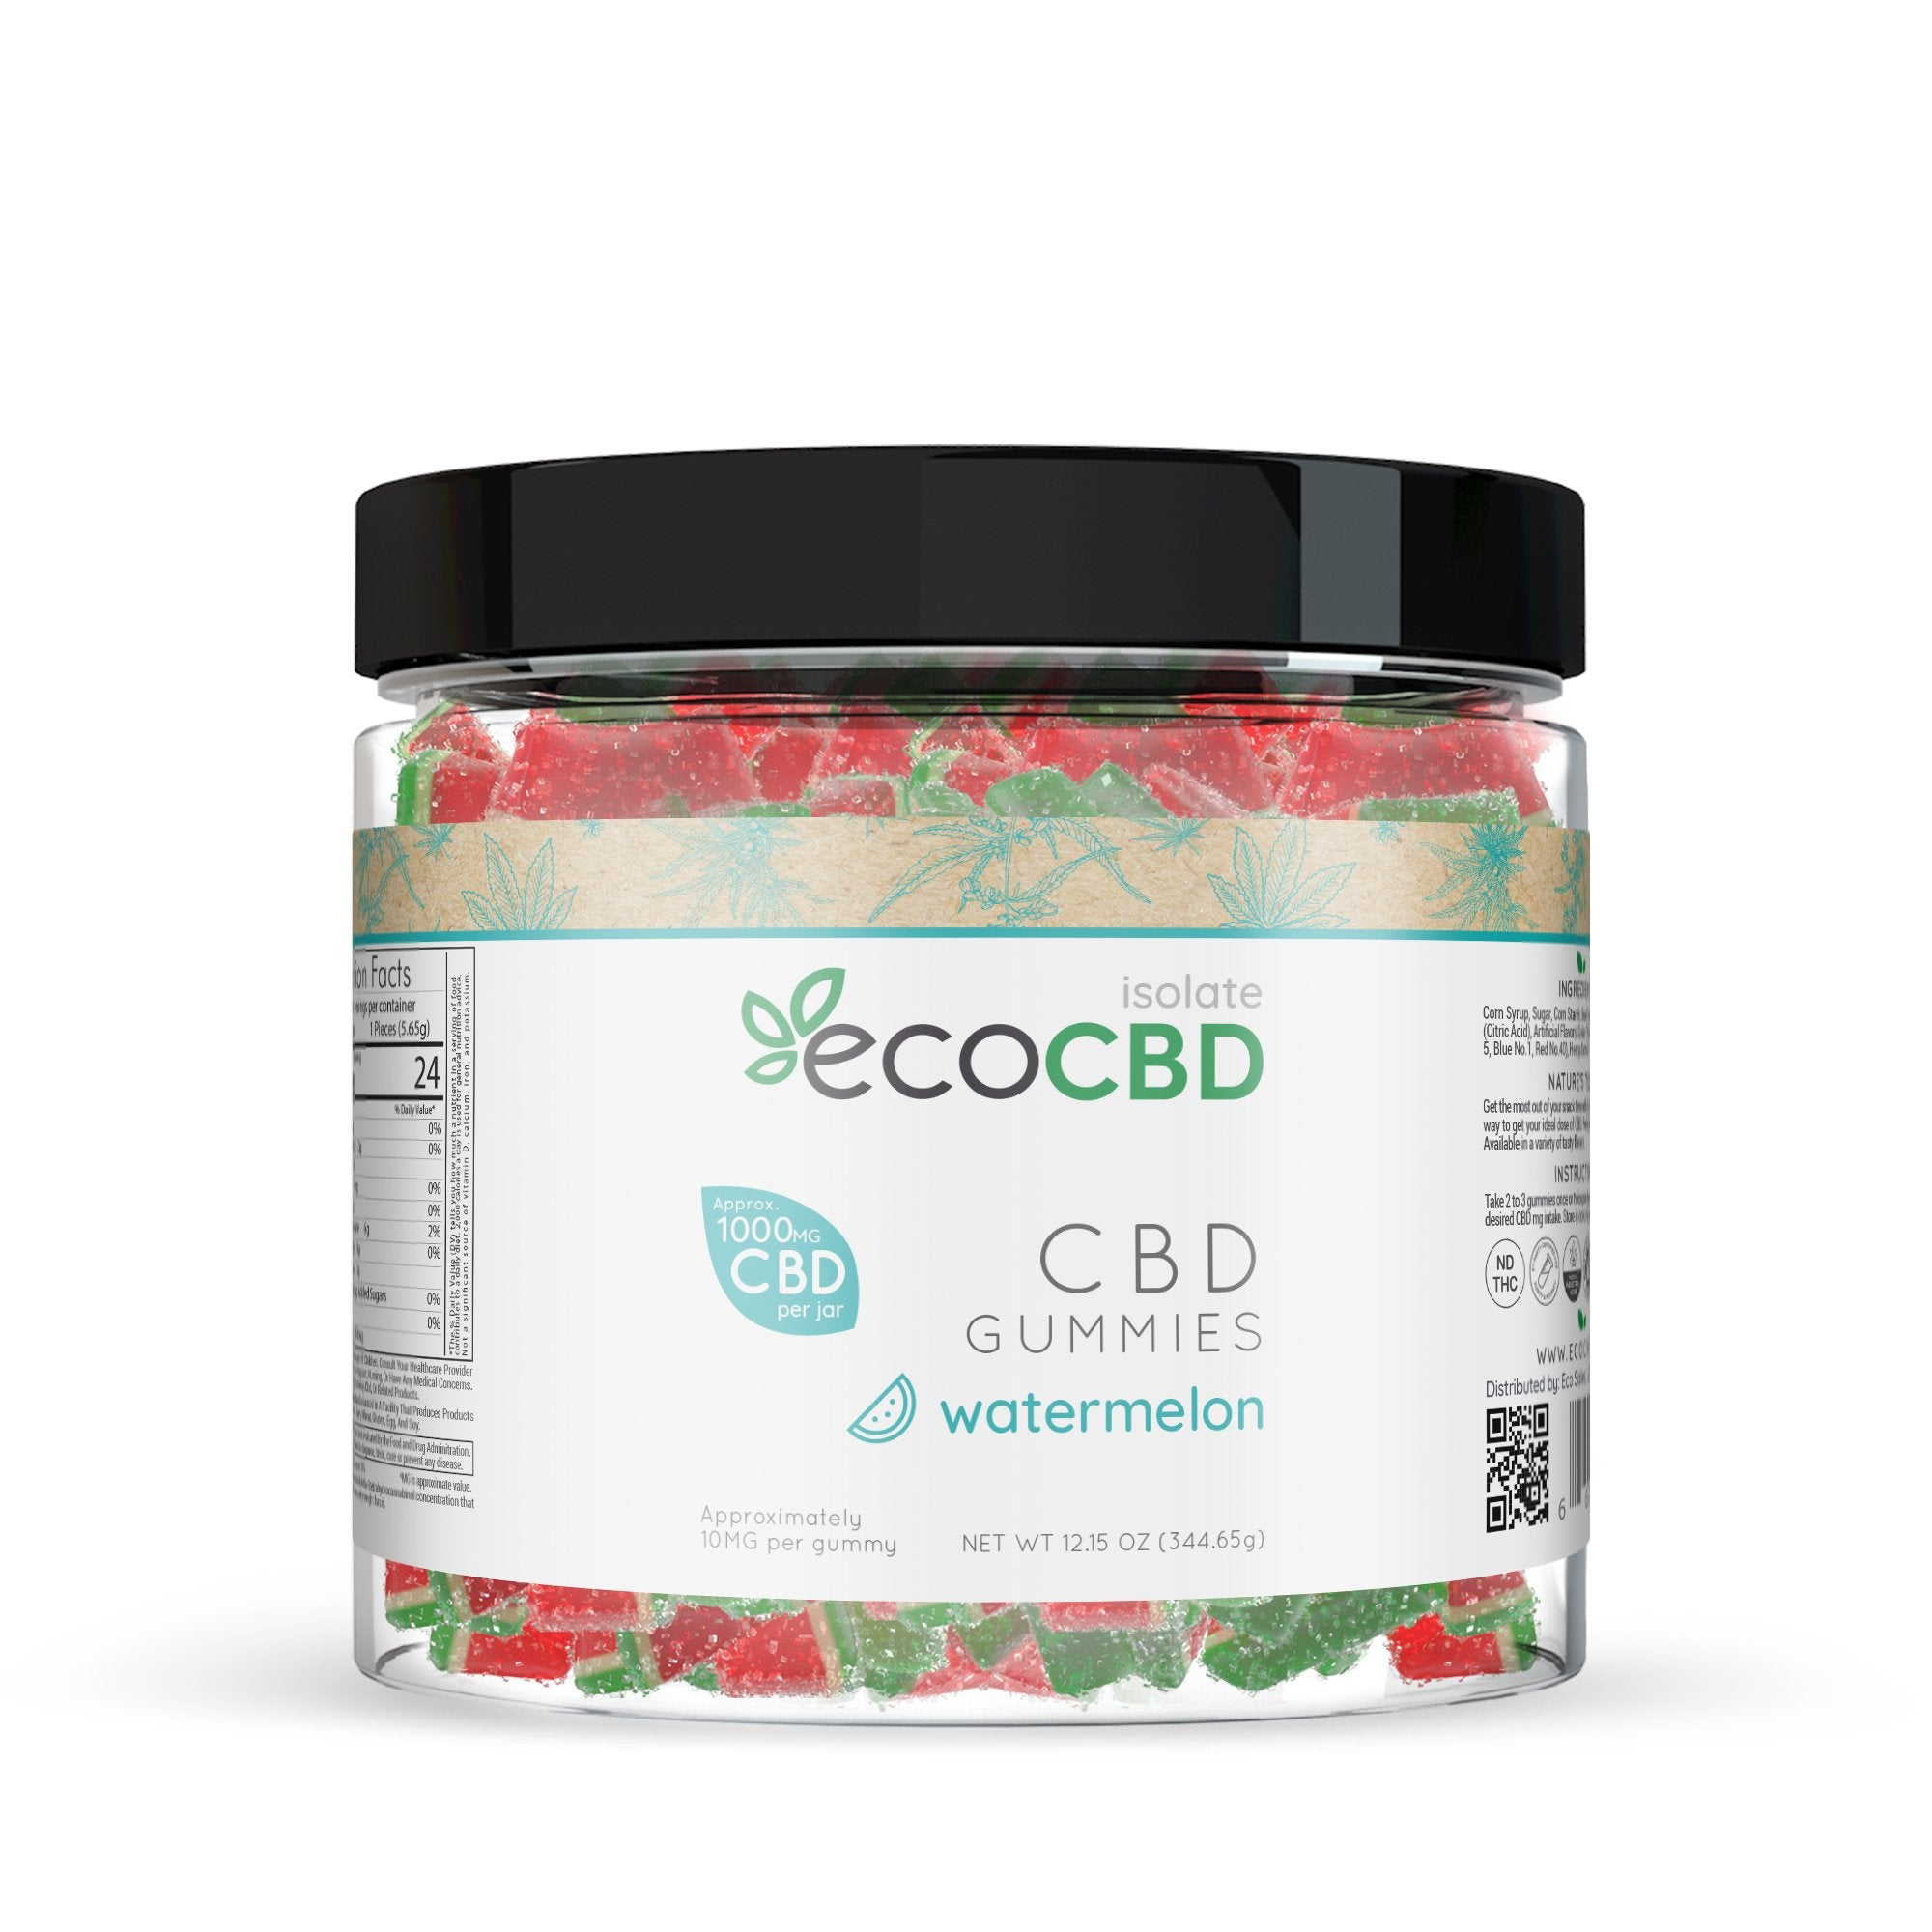 Eco CBD - CBD Isolate Gummies - Watermelon Slices - 1000mg